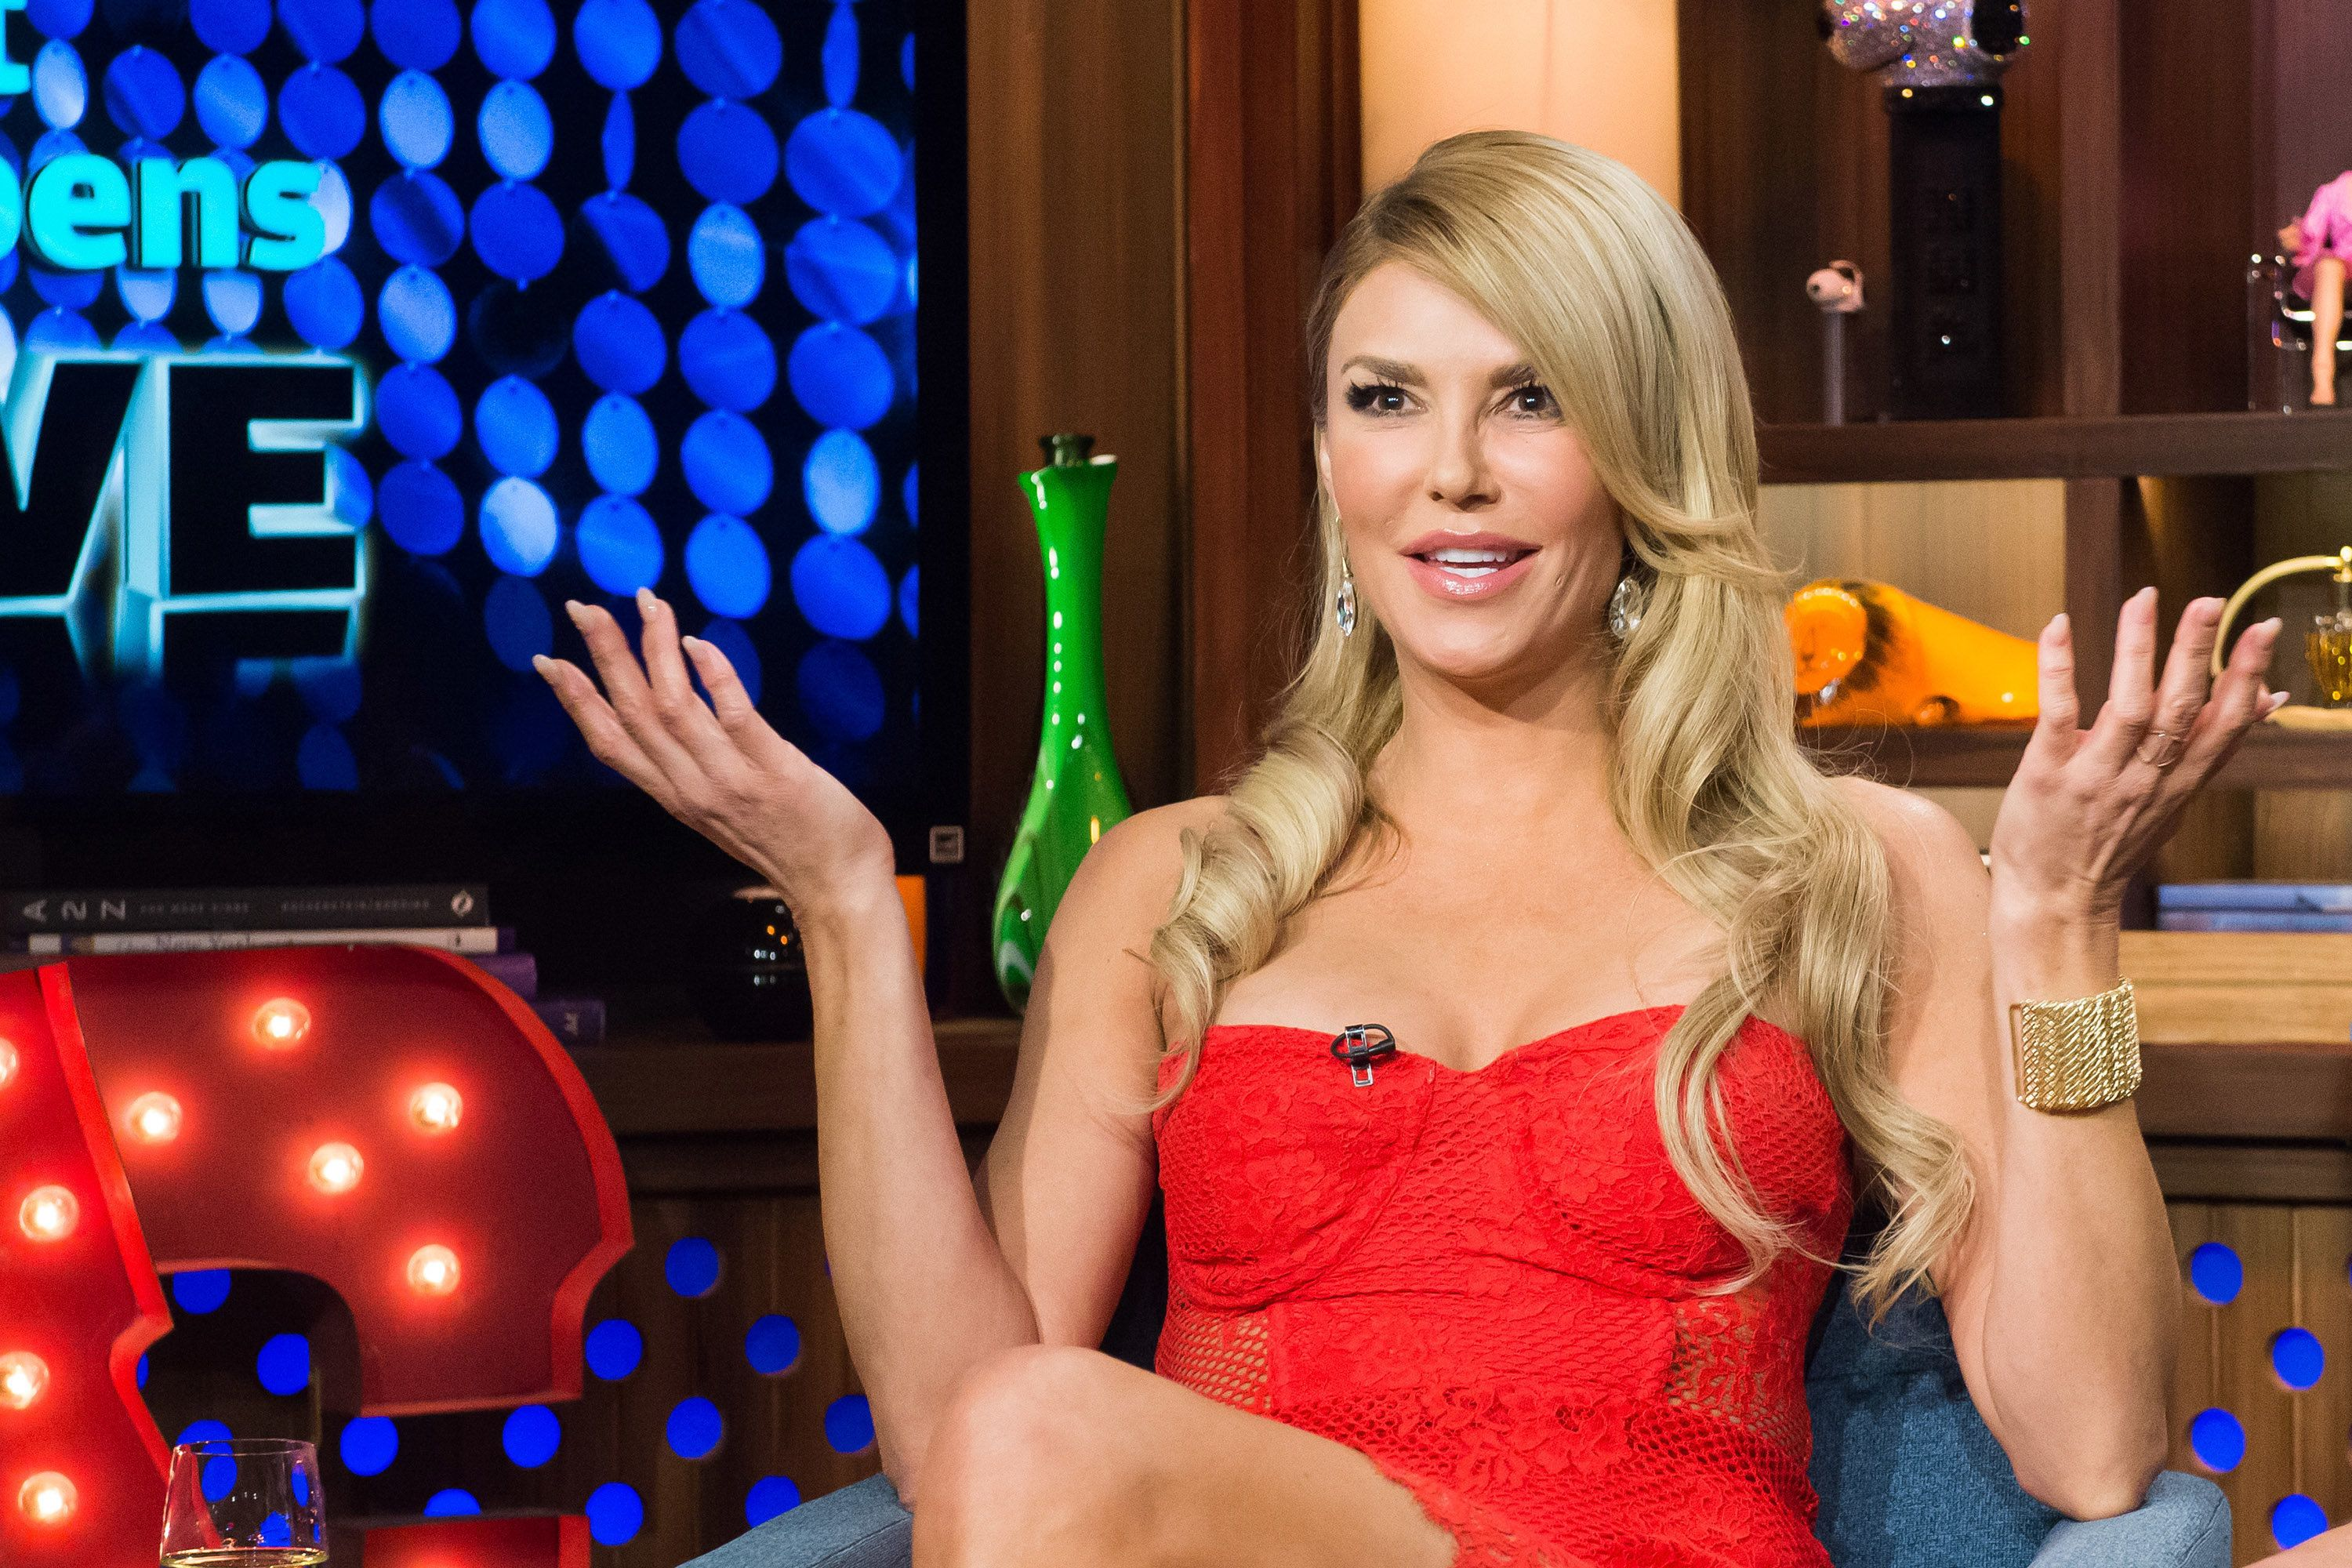 WATCH WHAT HAPPENS LIVE -- Pictured: Brandi Glanville -- (Photo by: Charles Sykes/Bravo/NBCU Photo Bank via Getty Images)